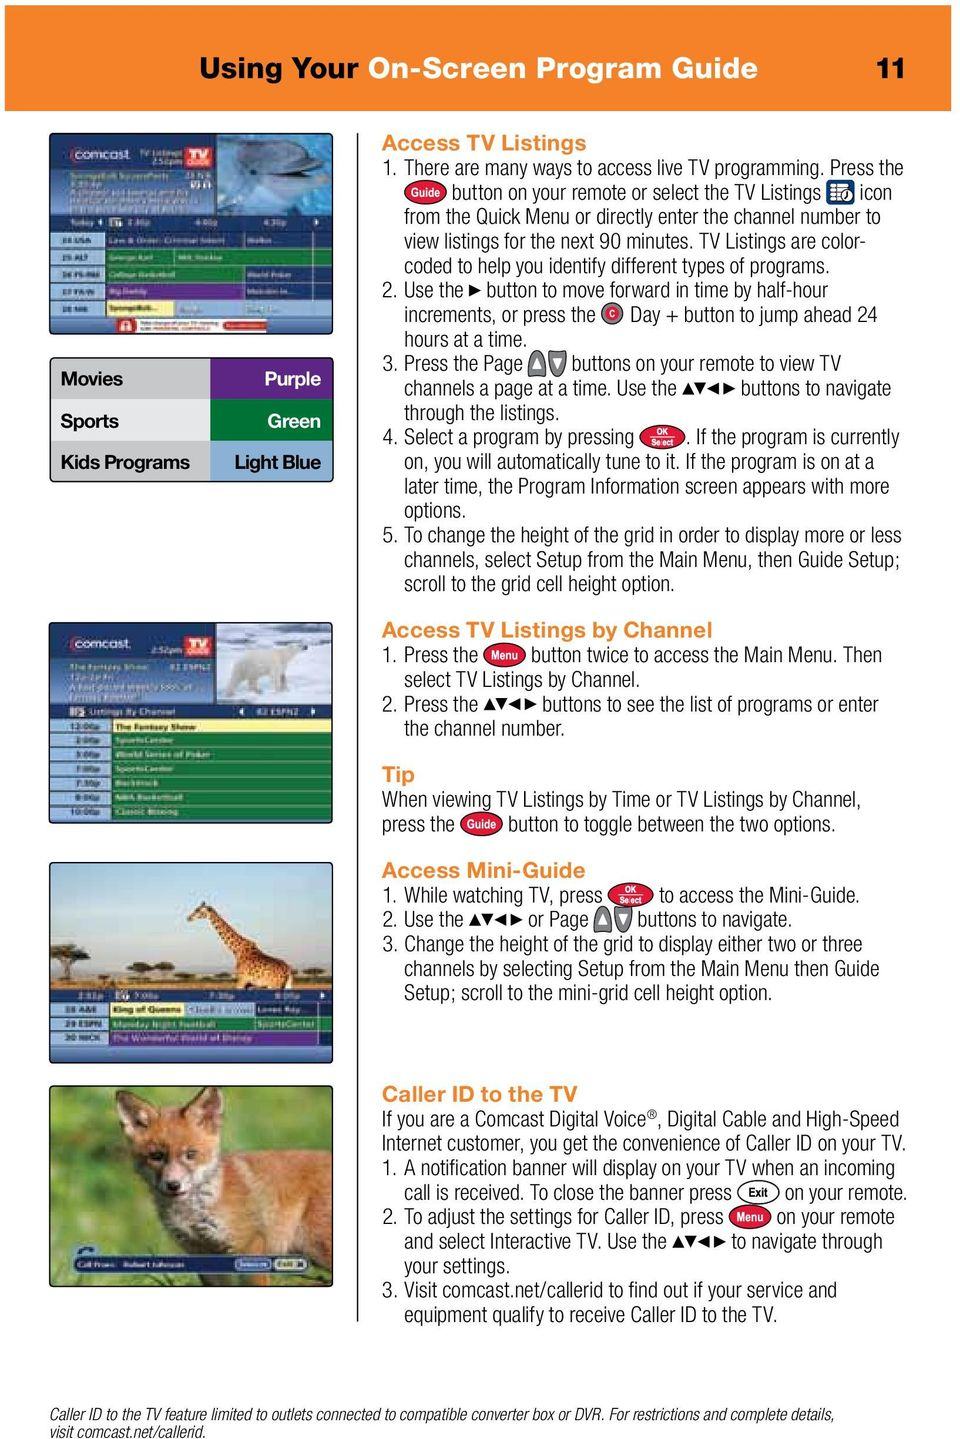 Comcast Digital Cable. It s like TV, but better. - PDF on